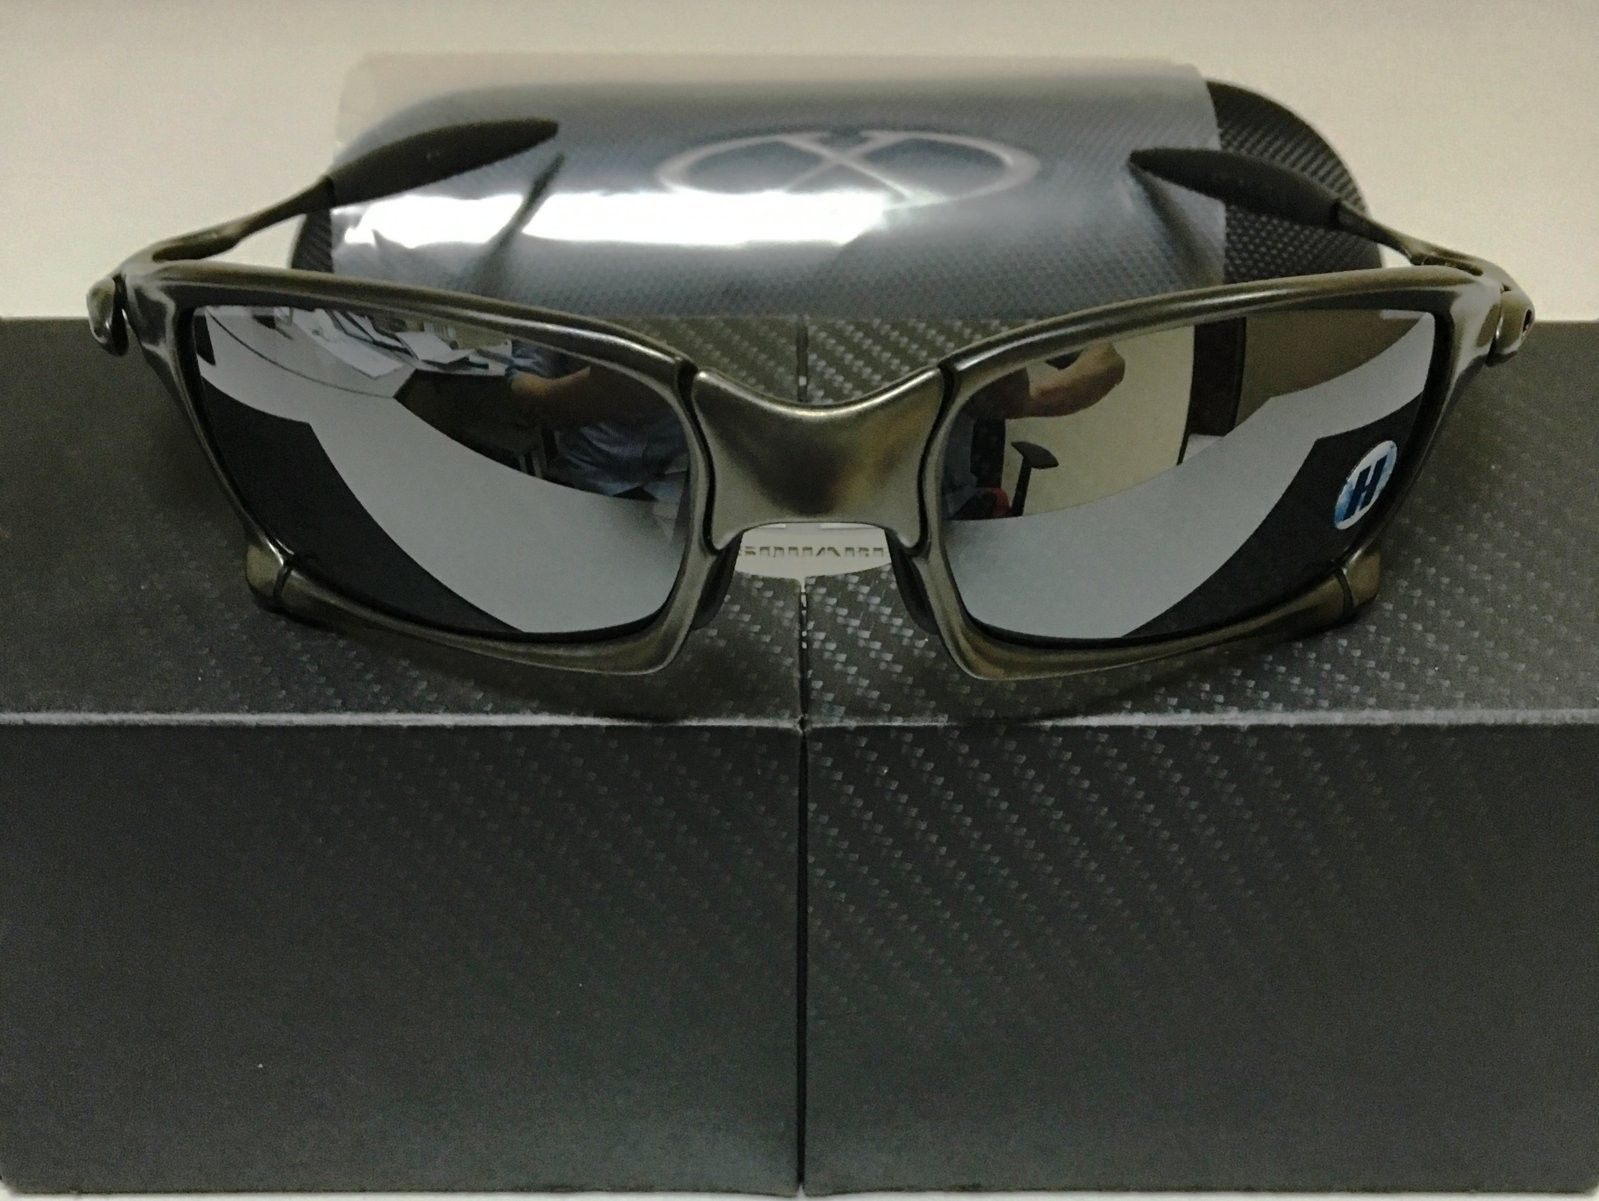 BNIB XS Carbon with BI all in USD 450 - image main photo.jpeg